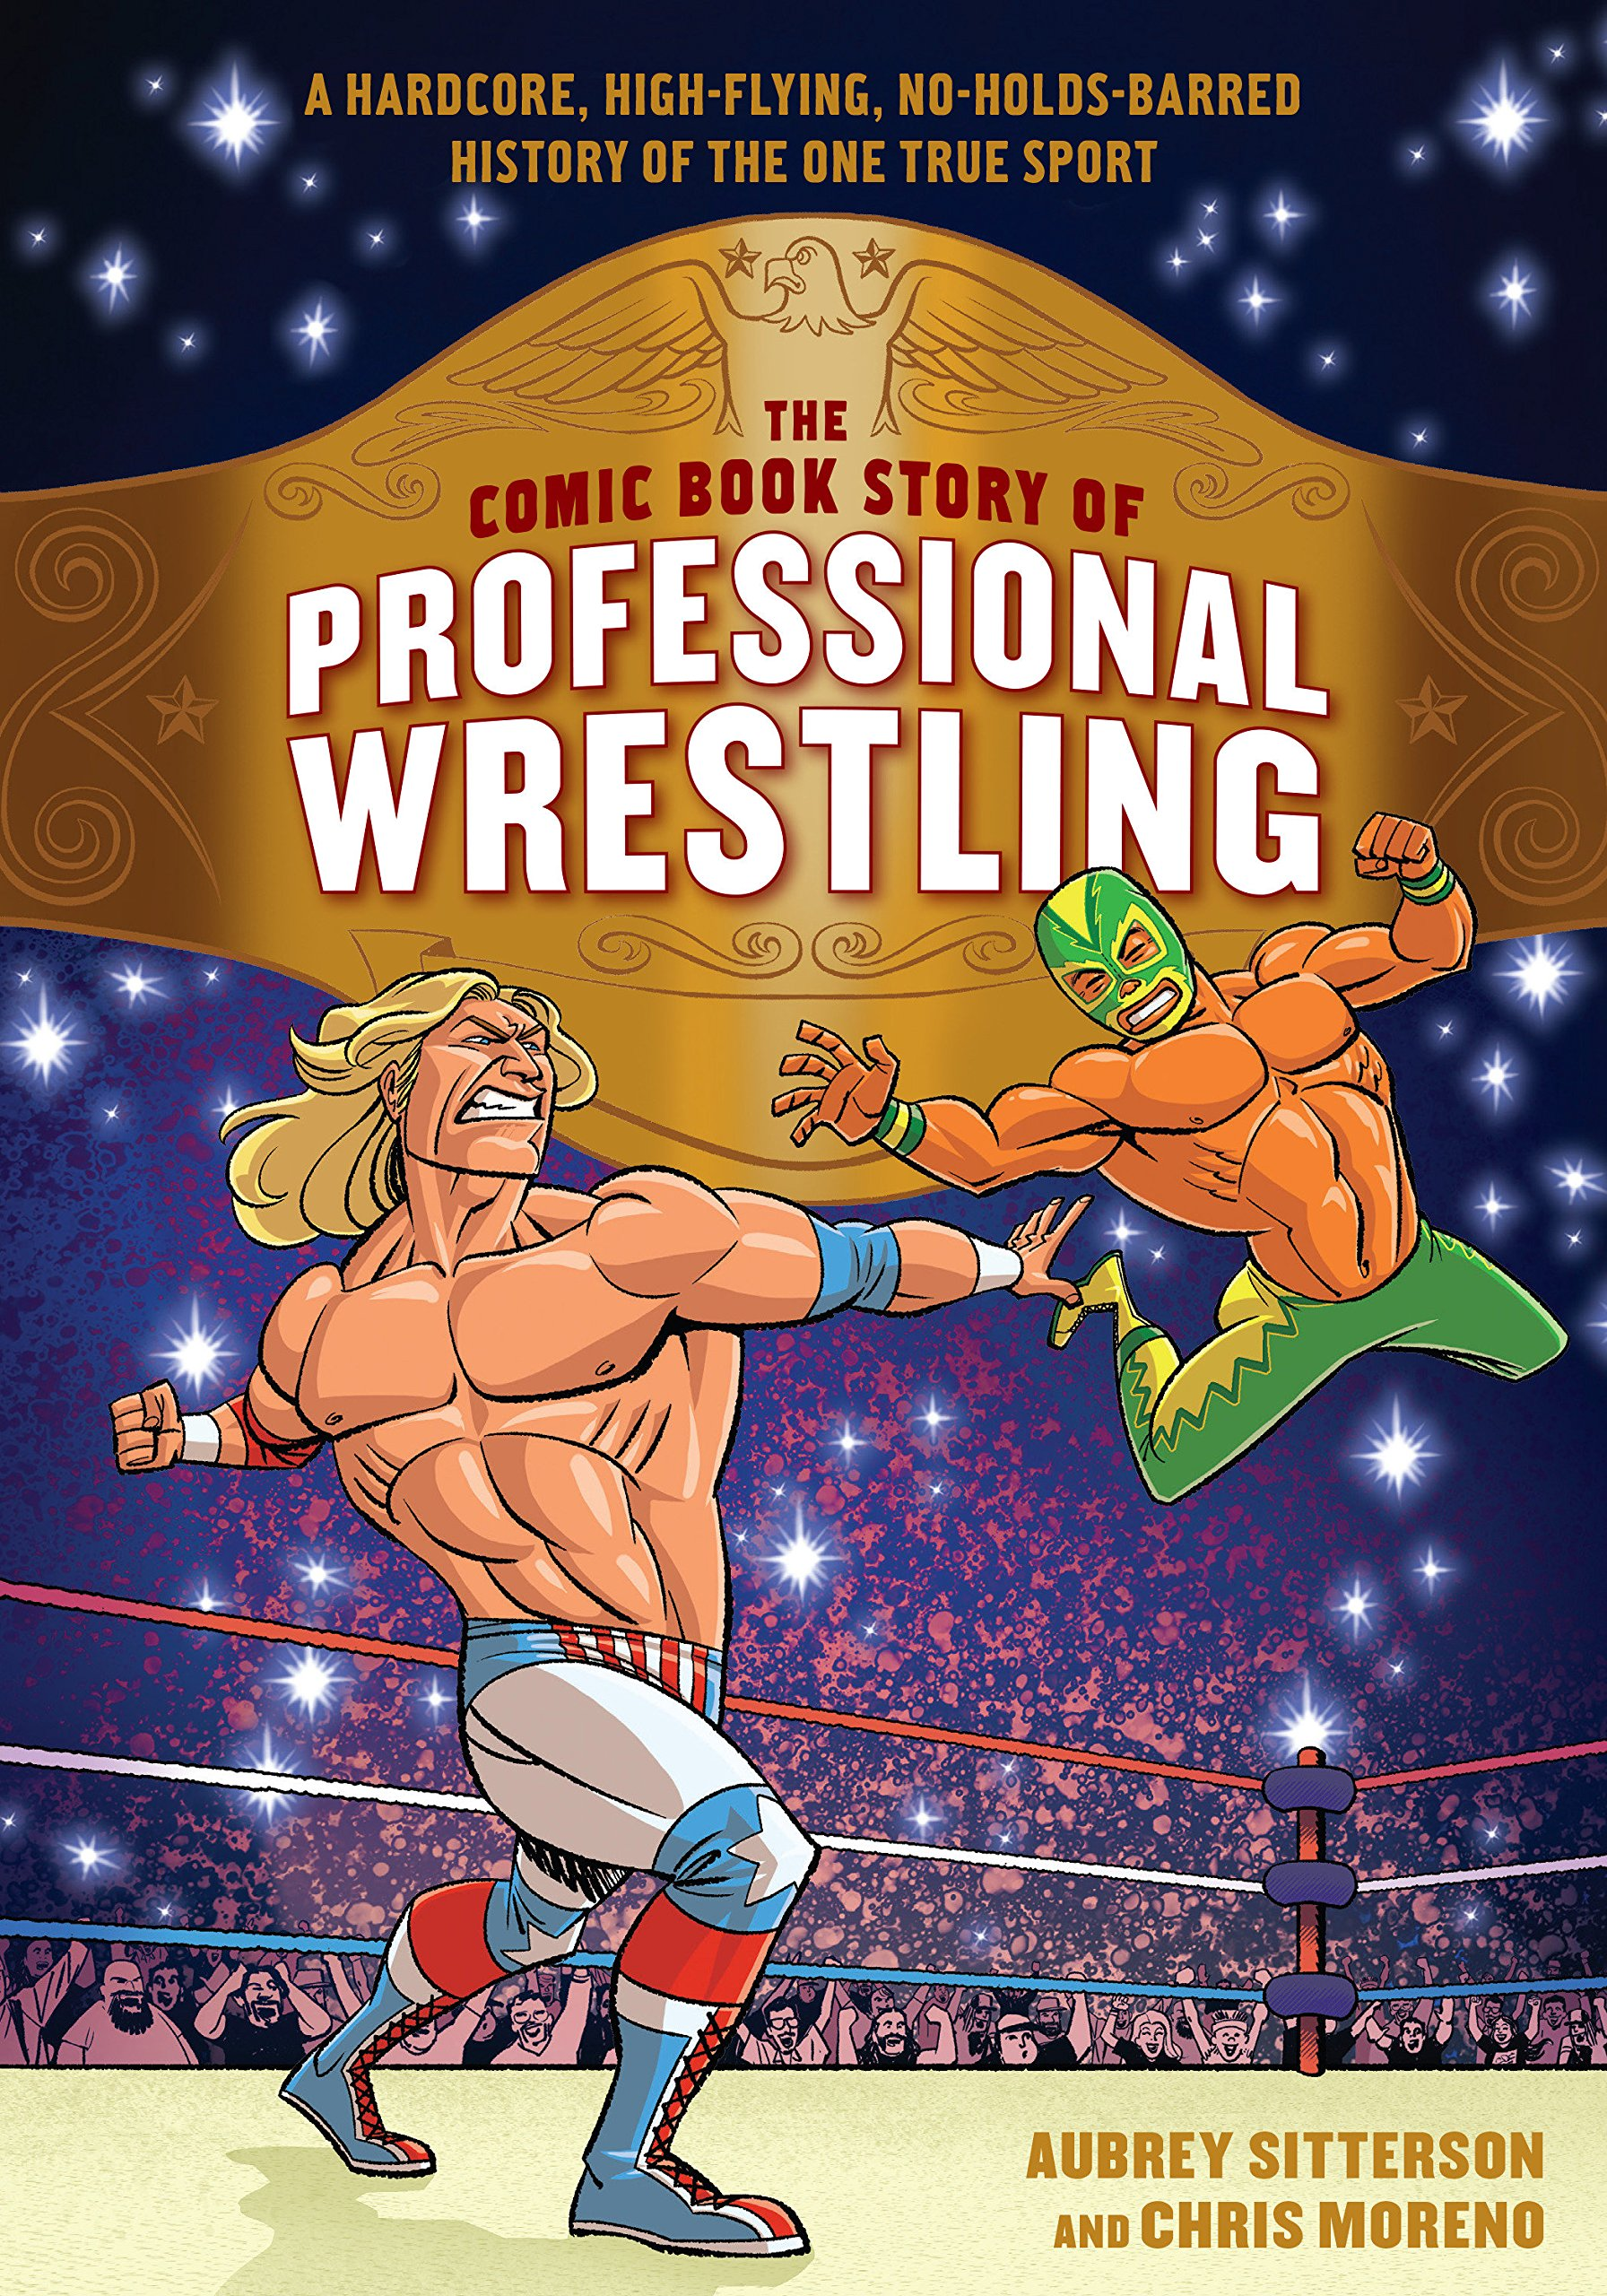 The Comic Book Story of Professional Wrestling: A Hardcore